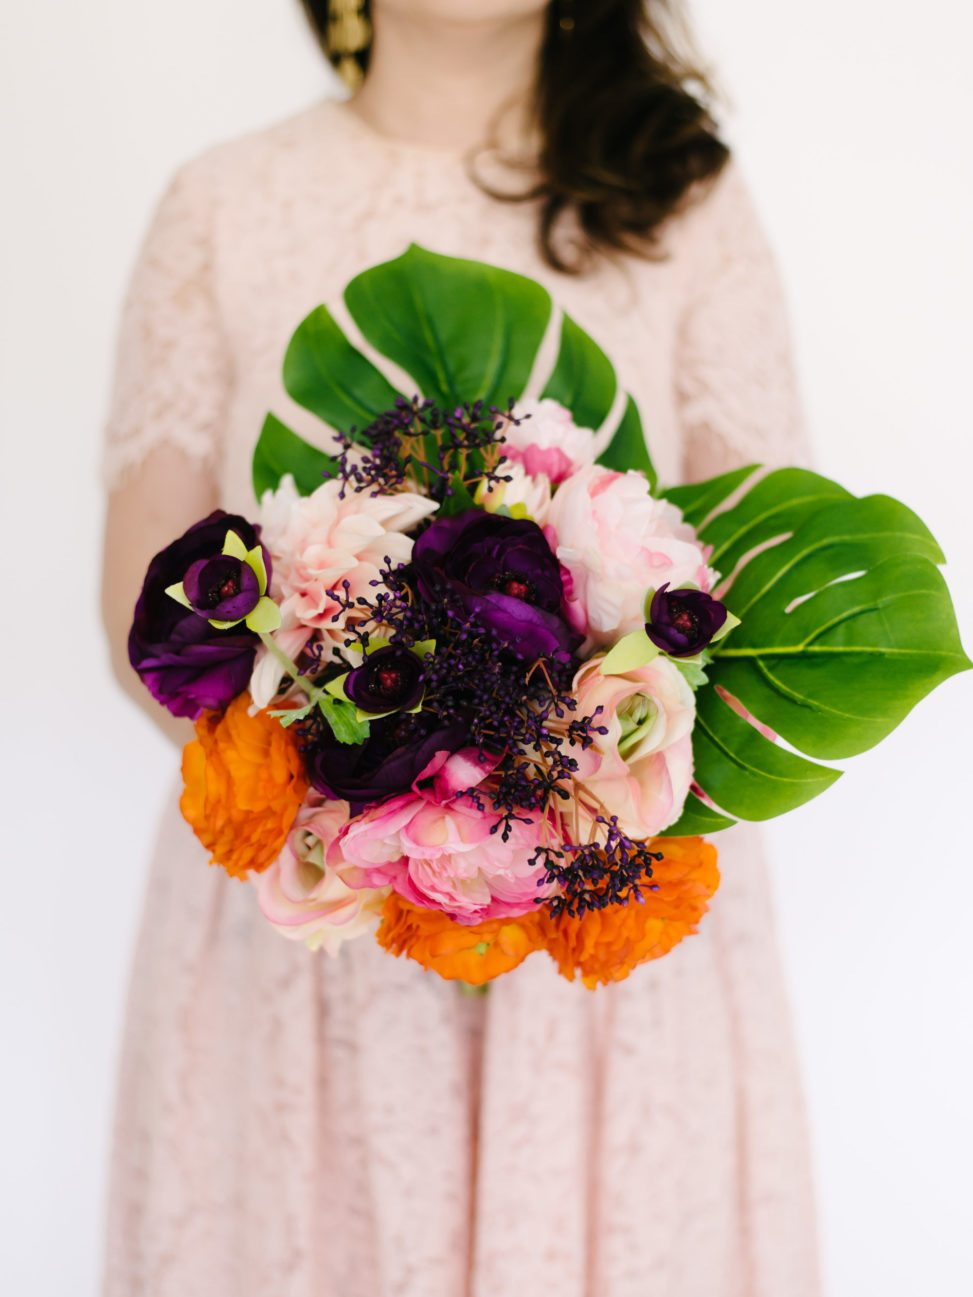 Fake flower arrangement that looks real with silk leafs and silk peonies held by woman in dress